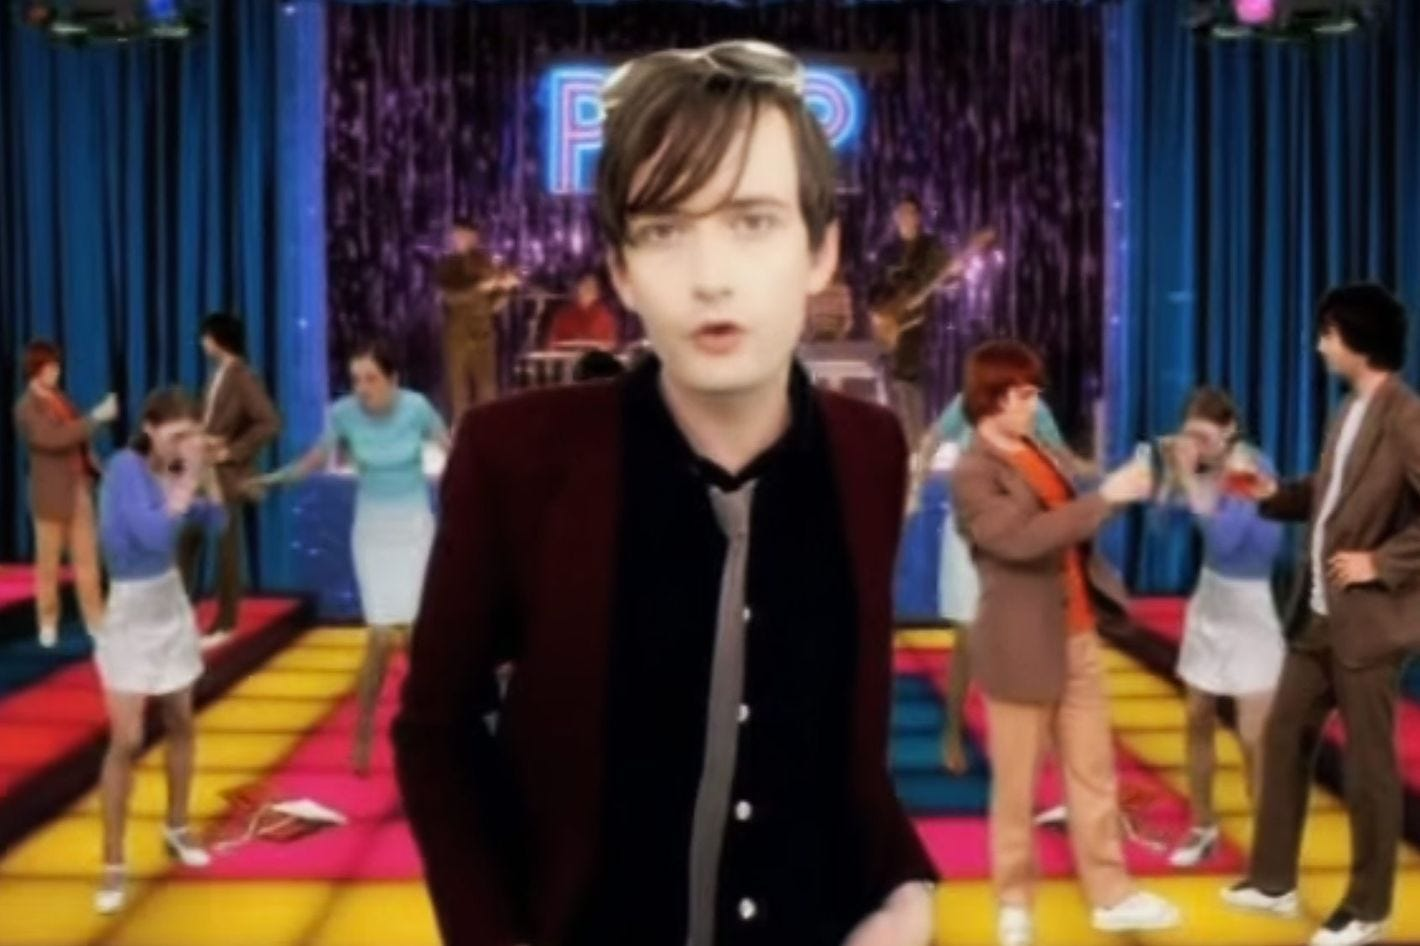 Now We Might Know the Woman Who Inspired Pulp's 'Common People' [Updated]